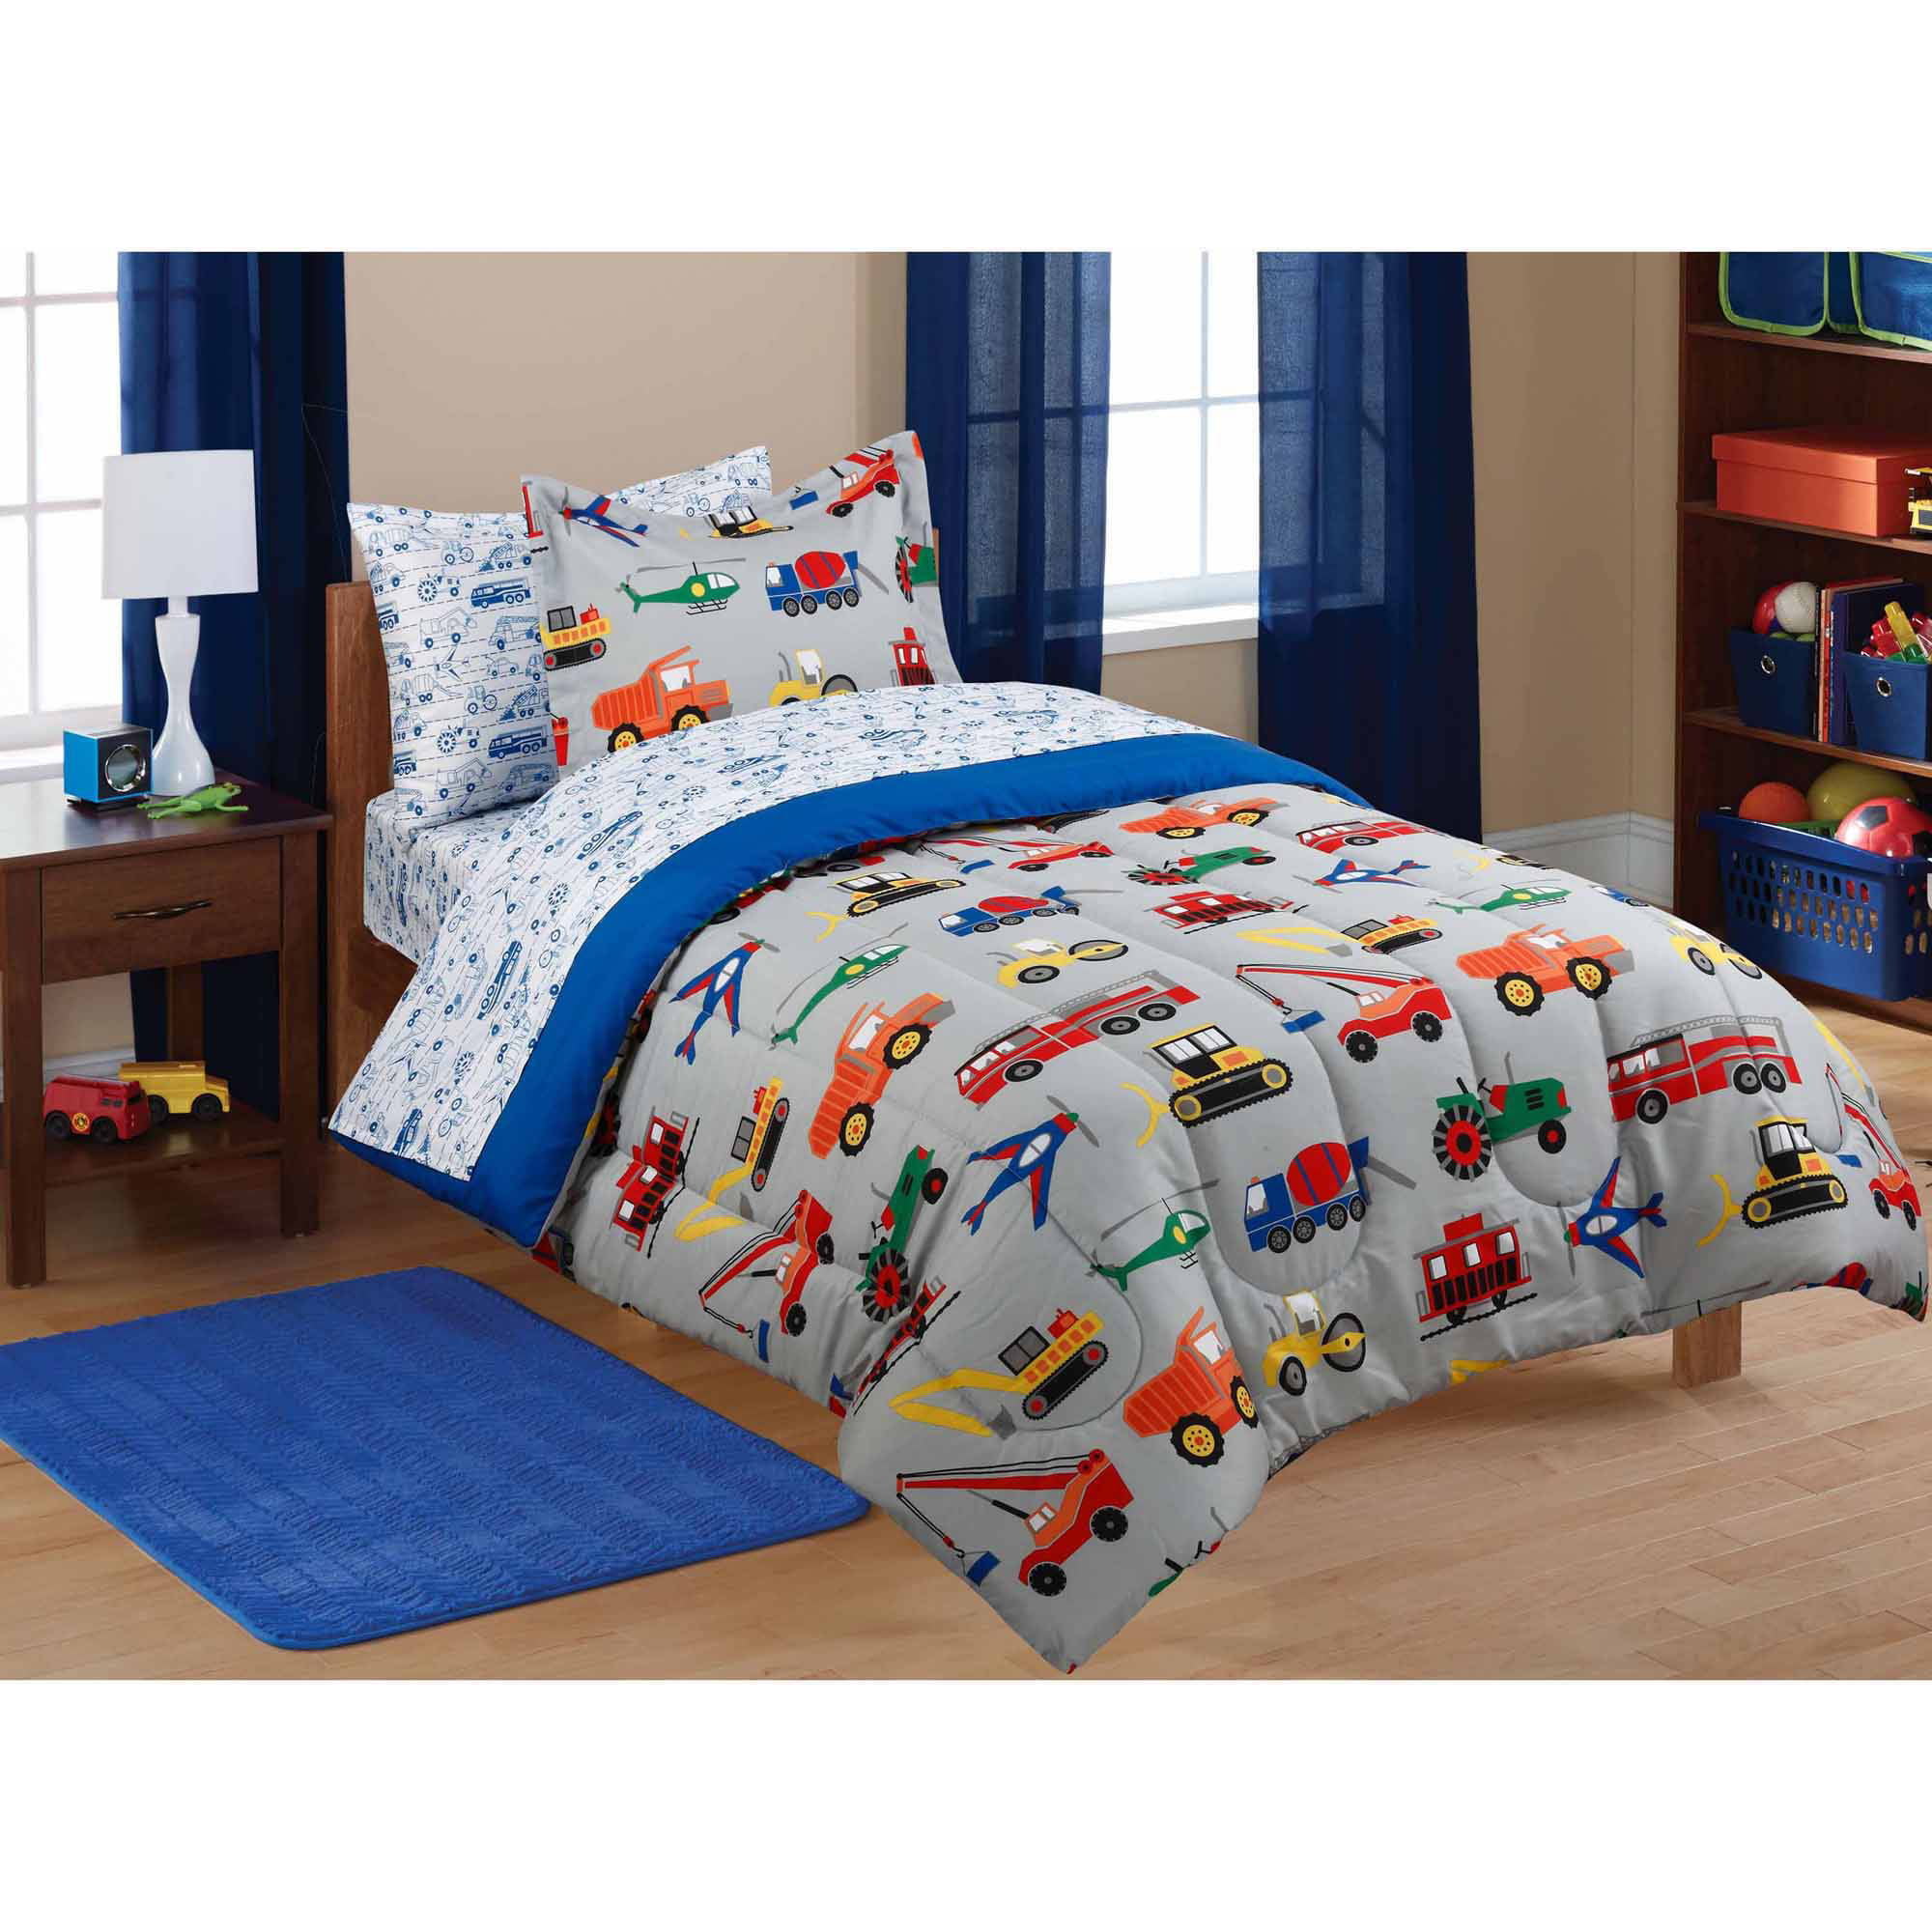 white comforters comforter pin bedding boys and boy all sports striped bedspreads